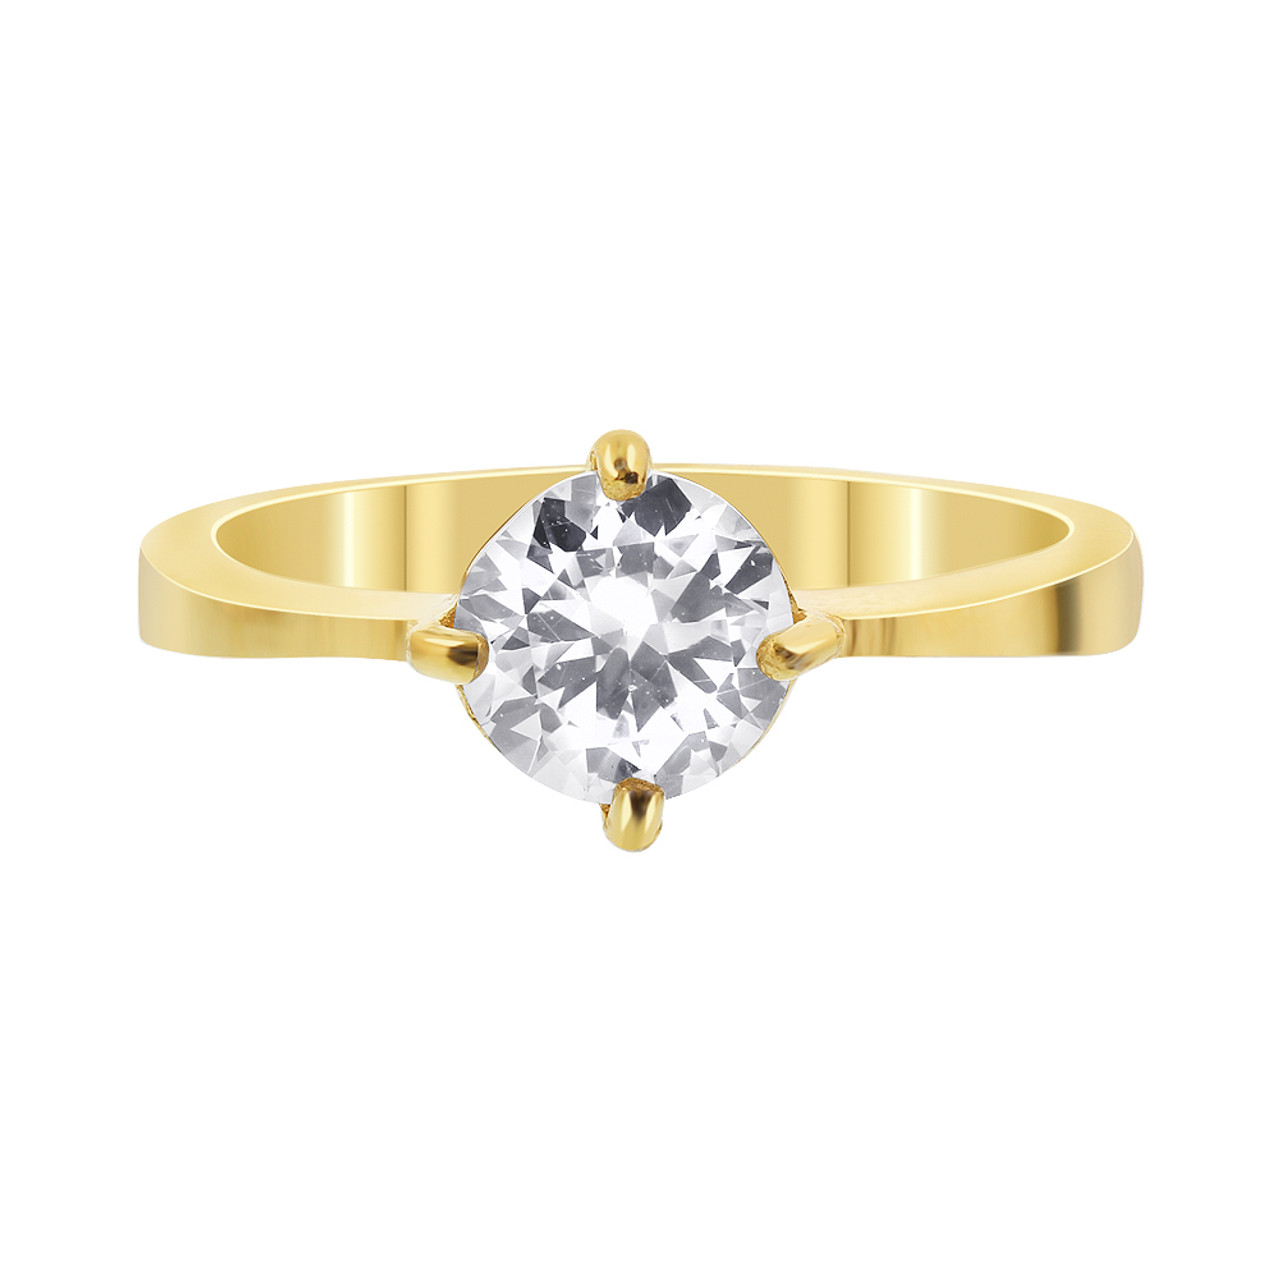 Stainless Steel Gold Tone Round Clear CZ Solitaire Ring